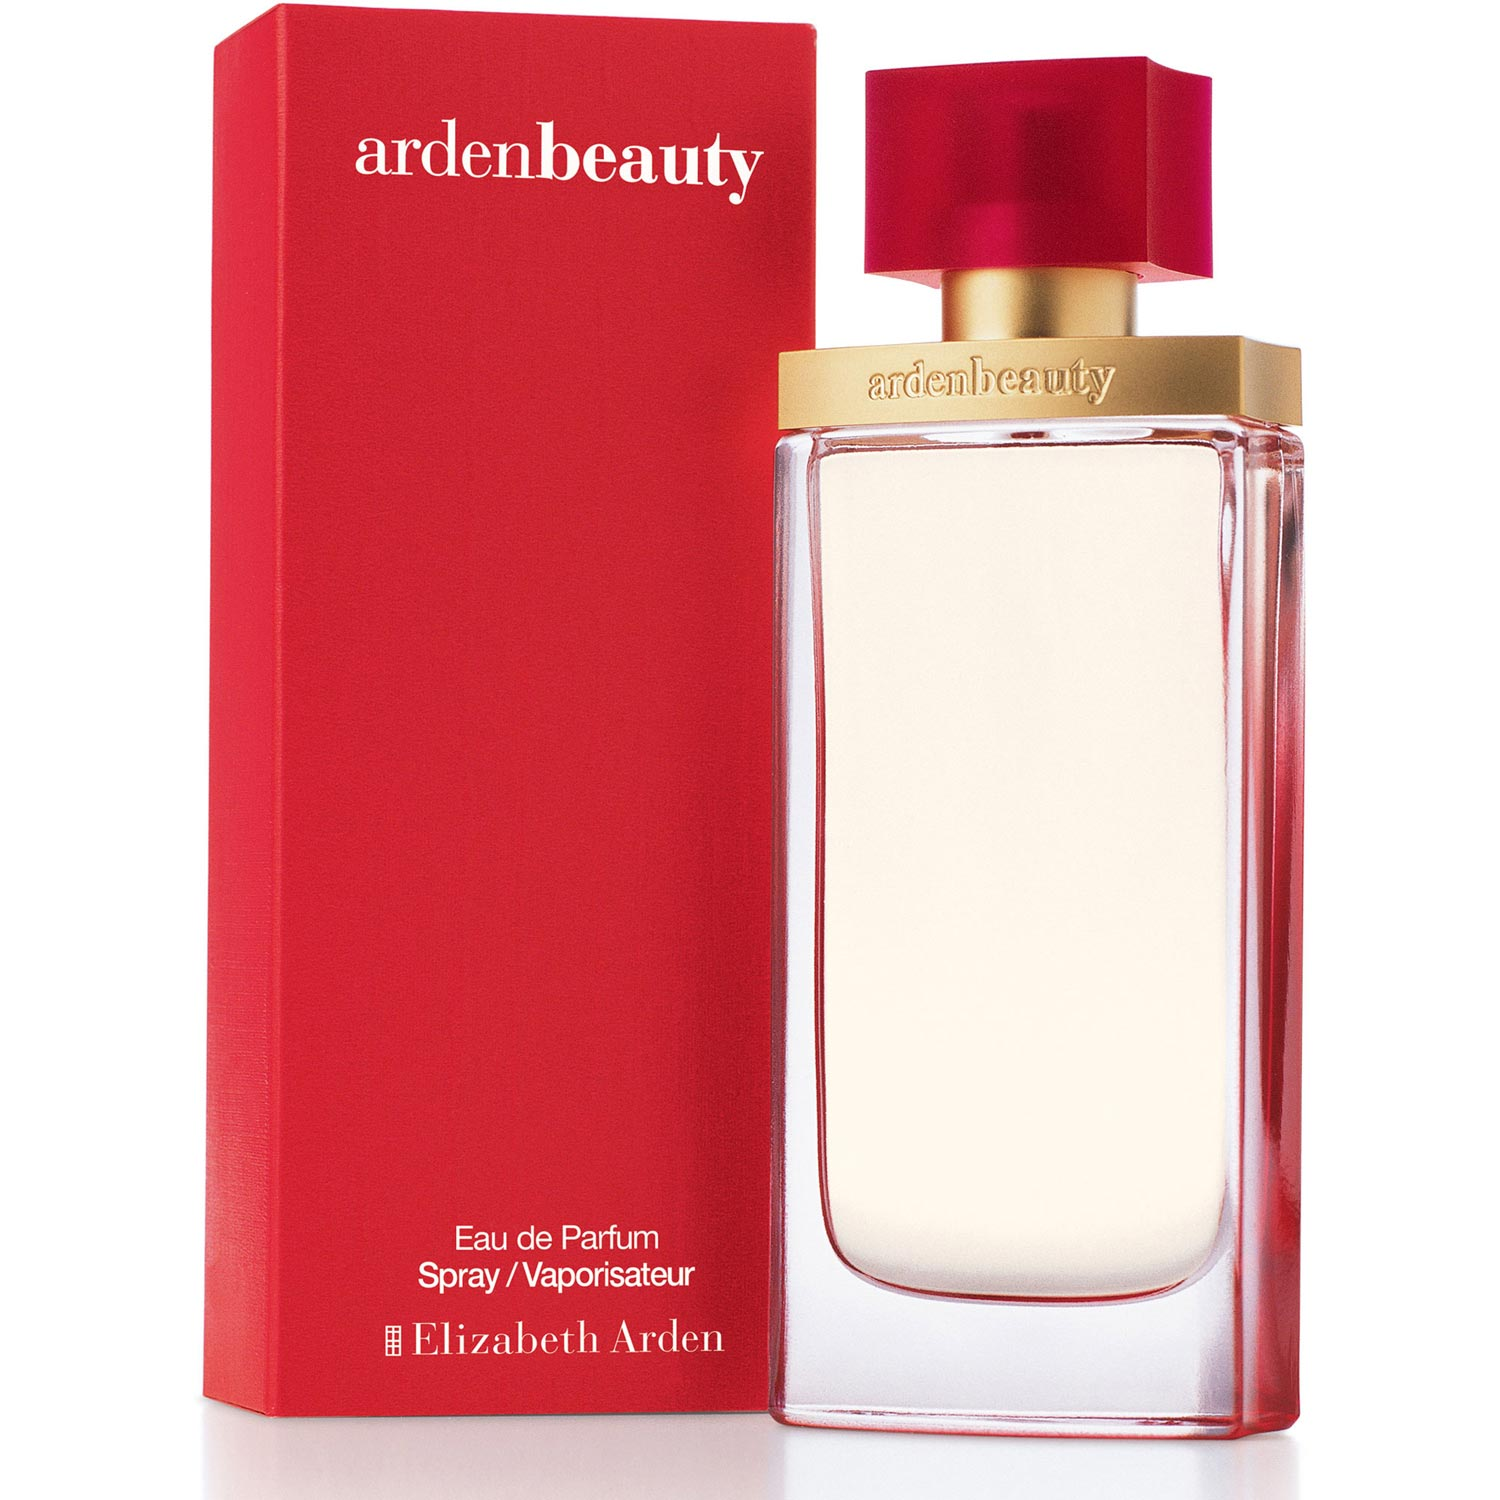 Парфюмерная вода Elizabeth Arden Arden Beauty 100ml тестер фото